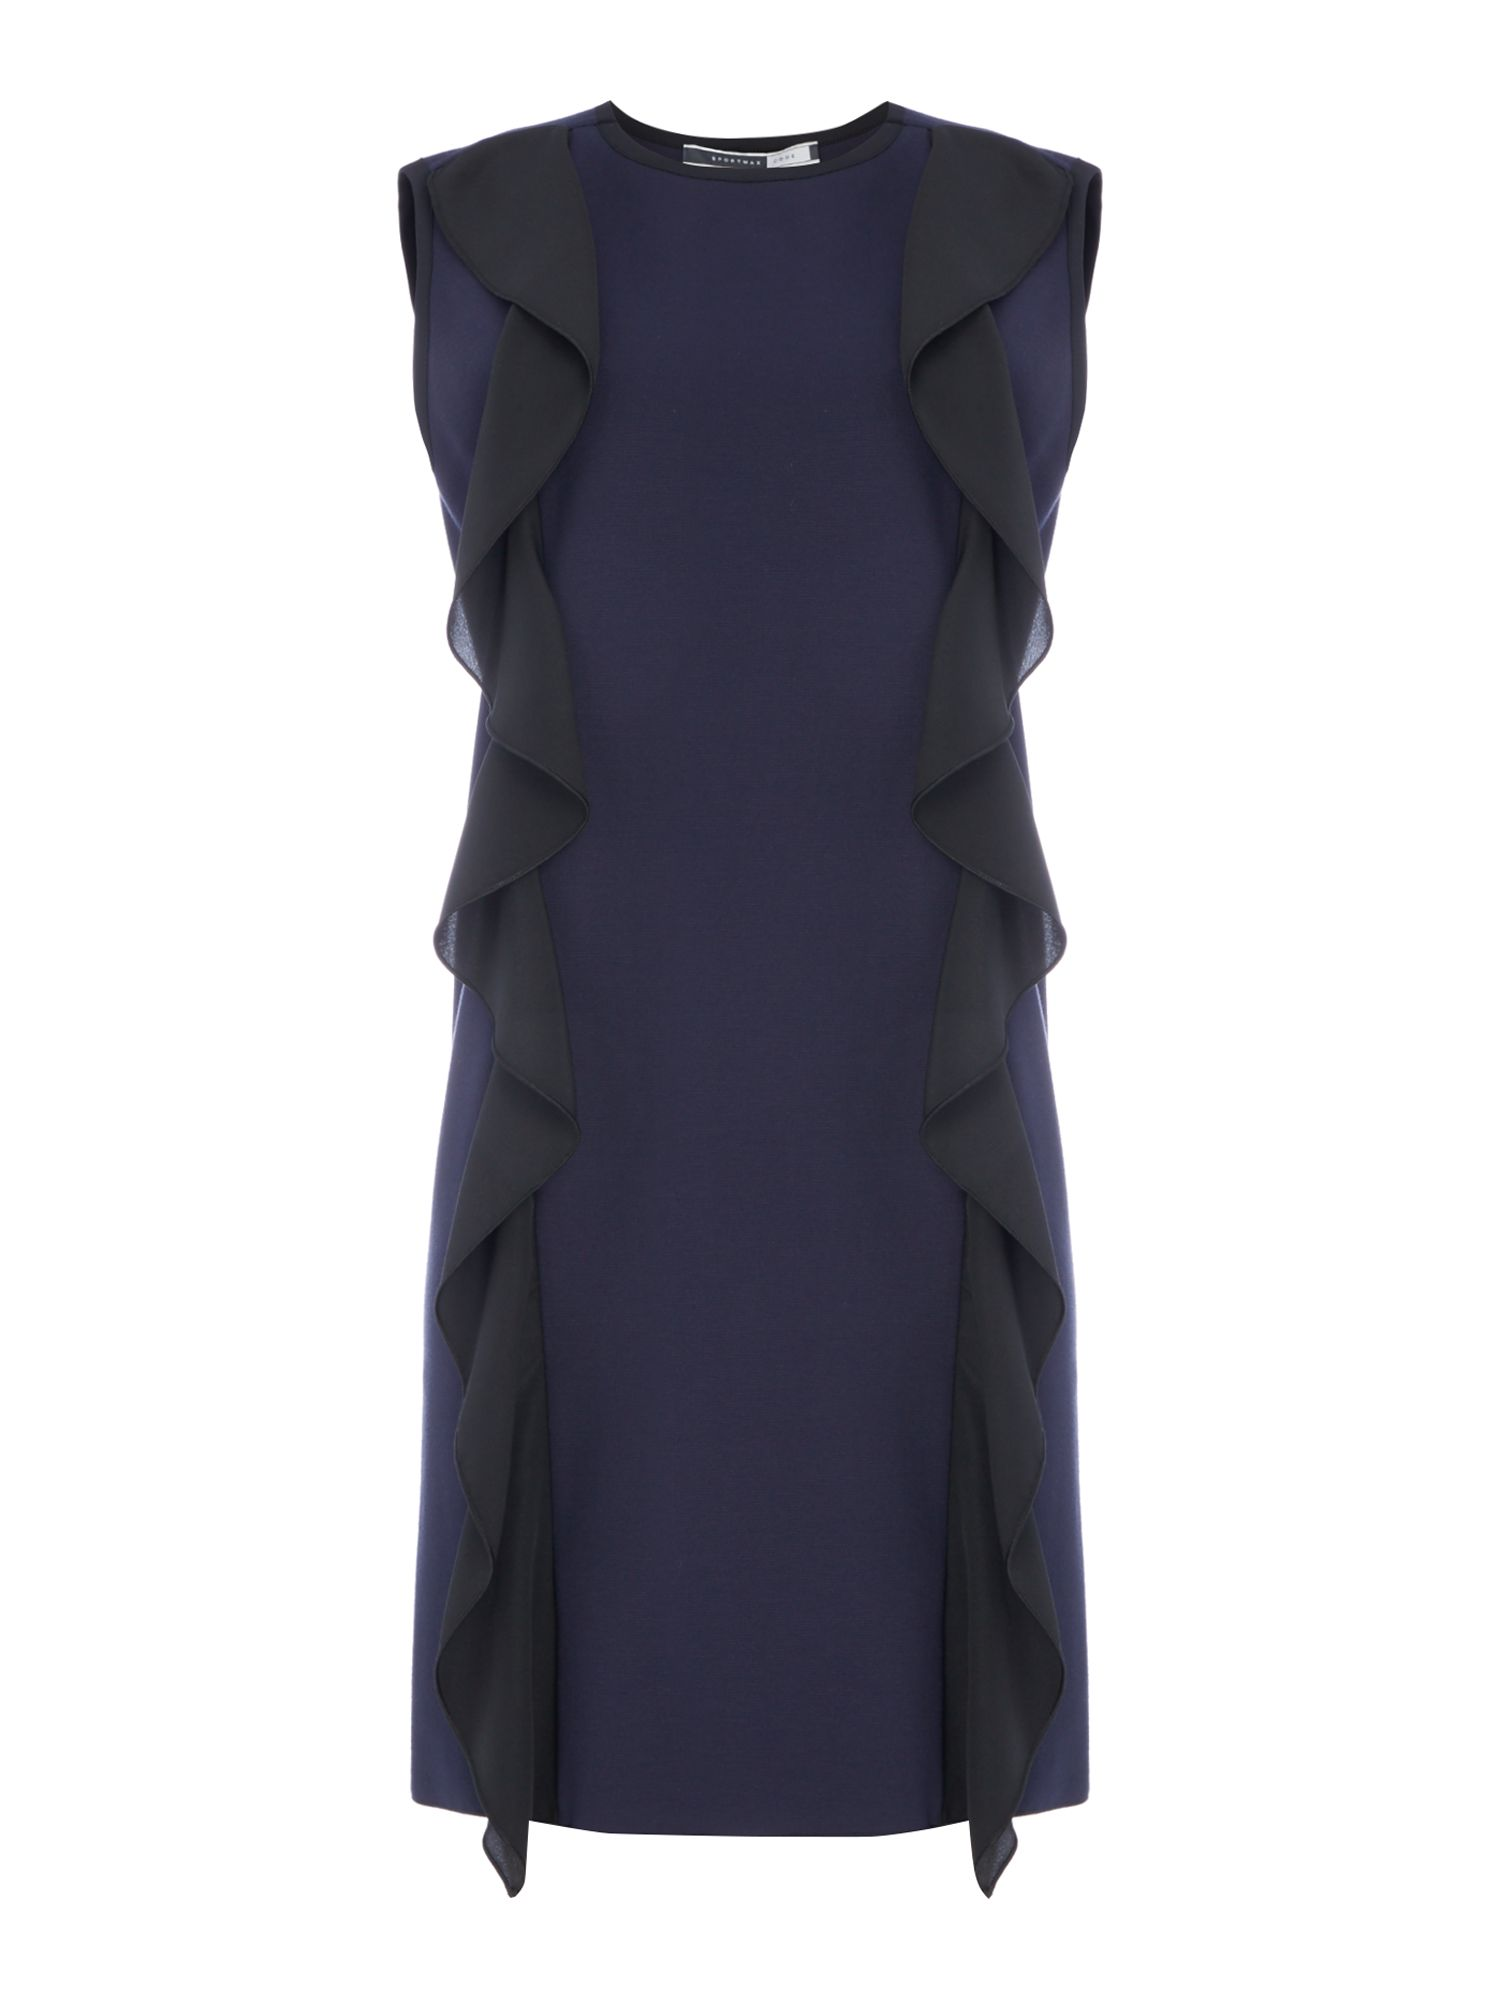 Sportmax Code Musa ruffle sleeveless dress, Cornflower